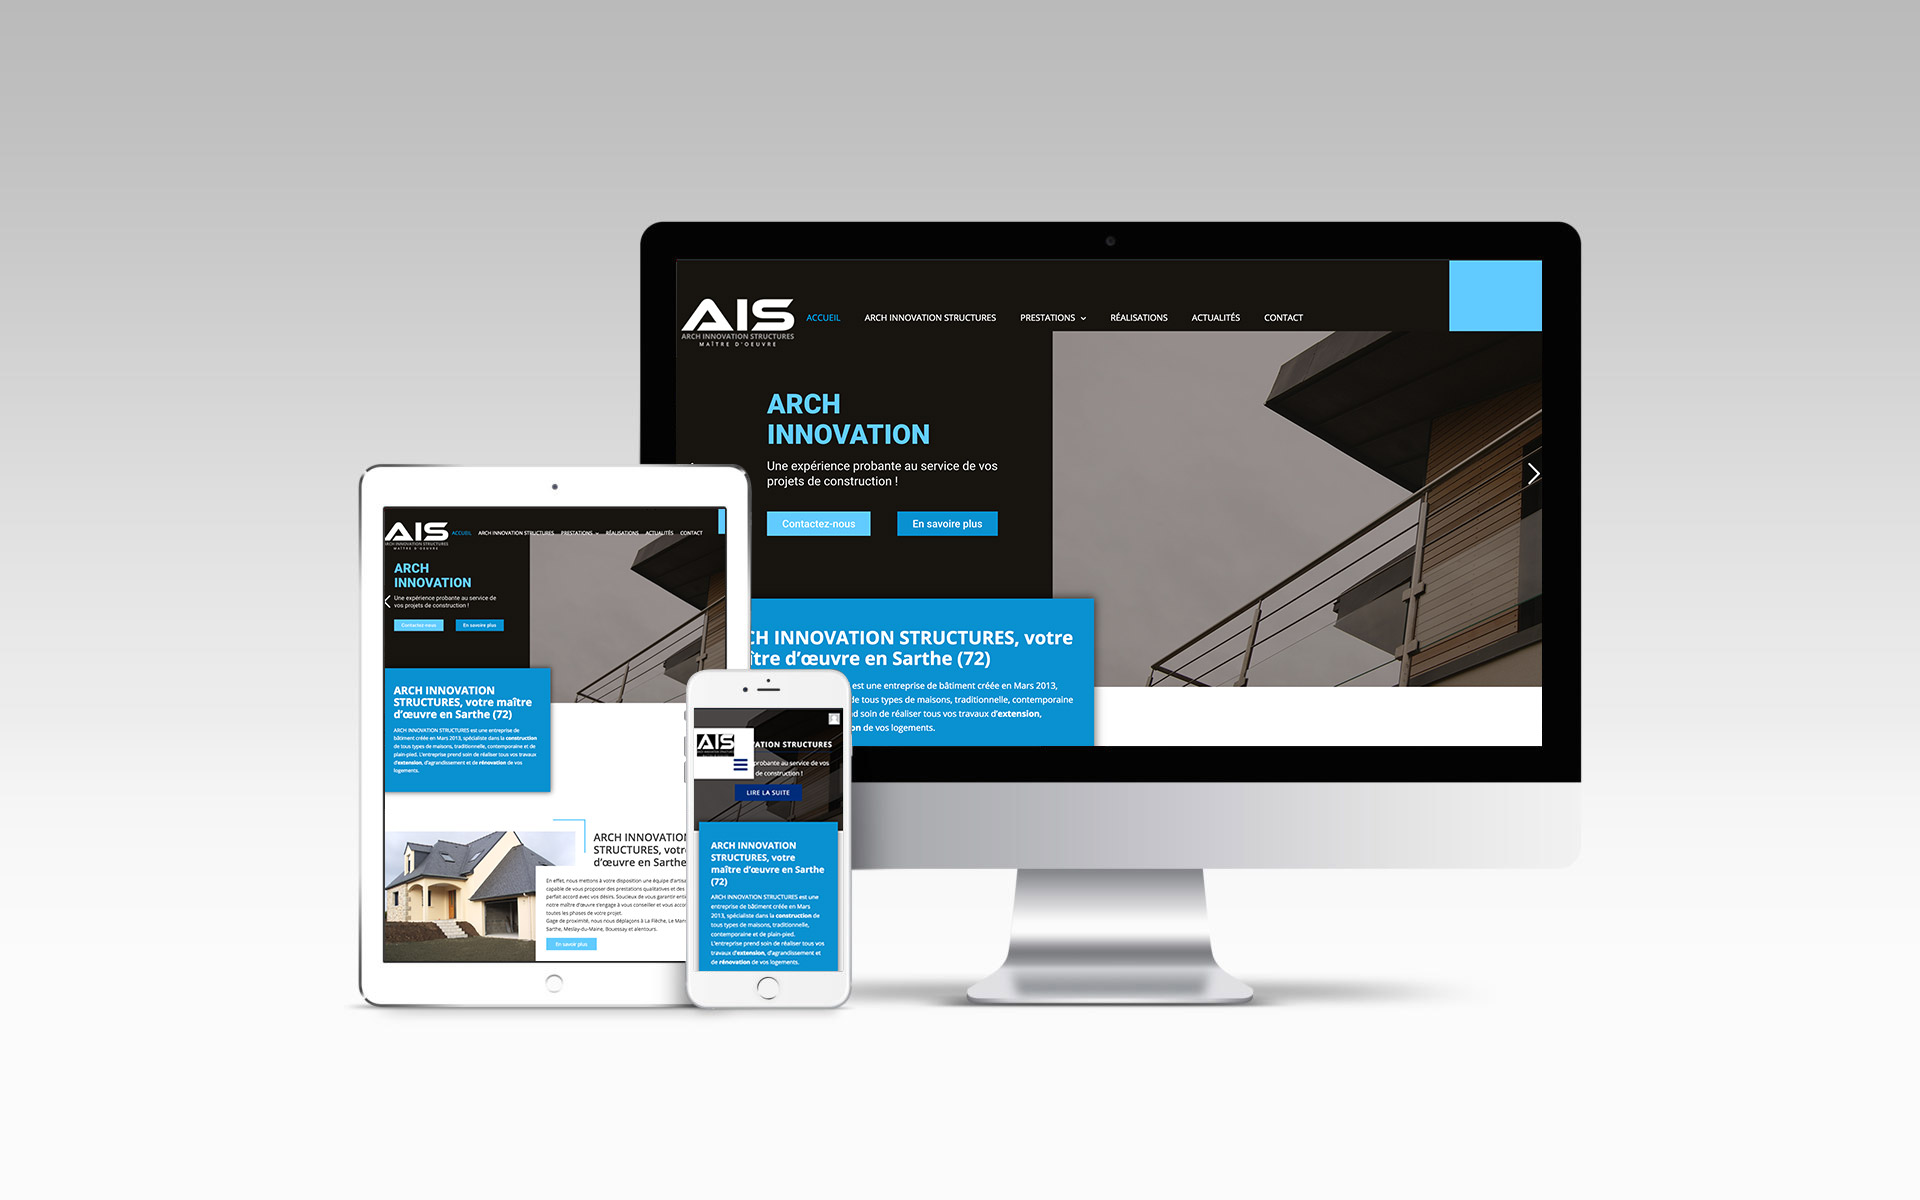 Arch Innovation Structures Constructeur Maison Website Mockup 130